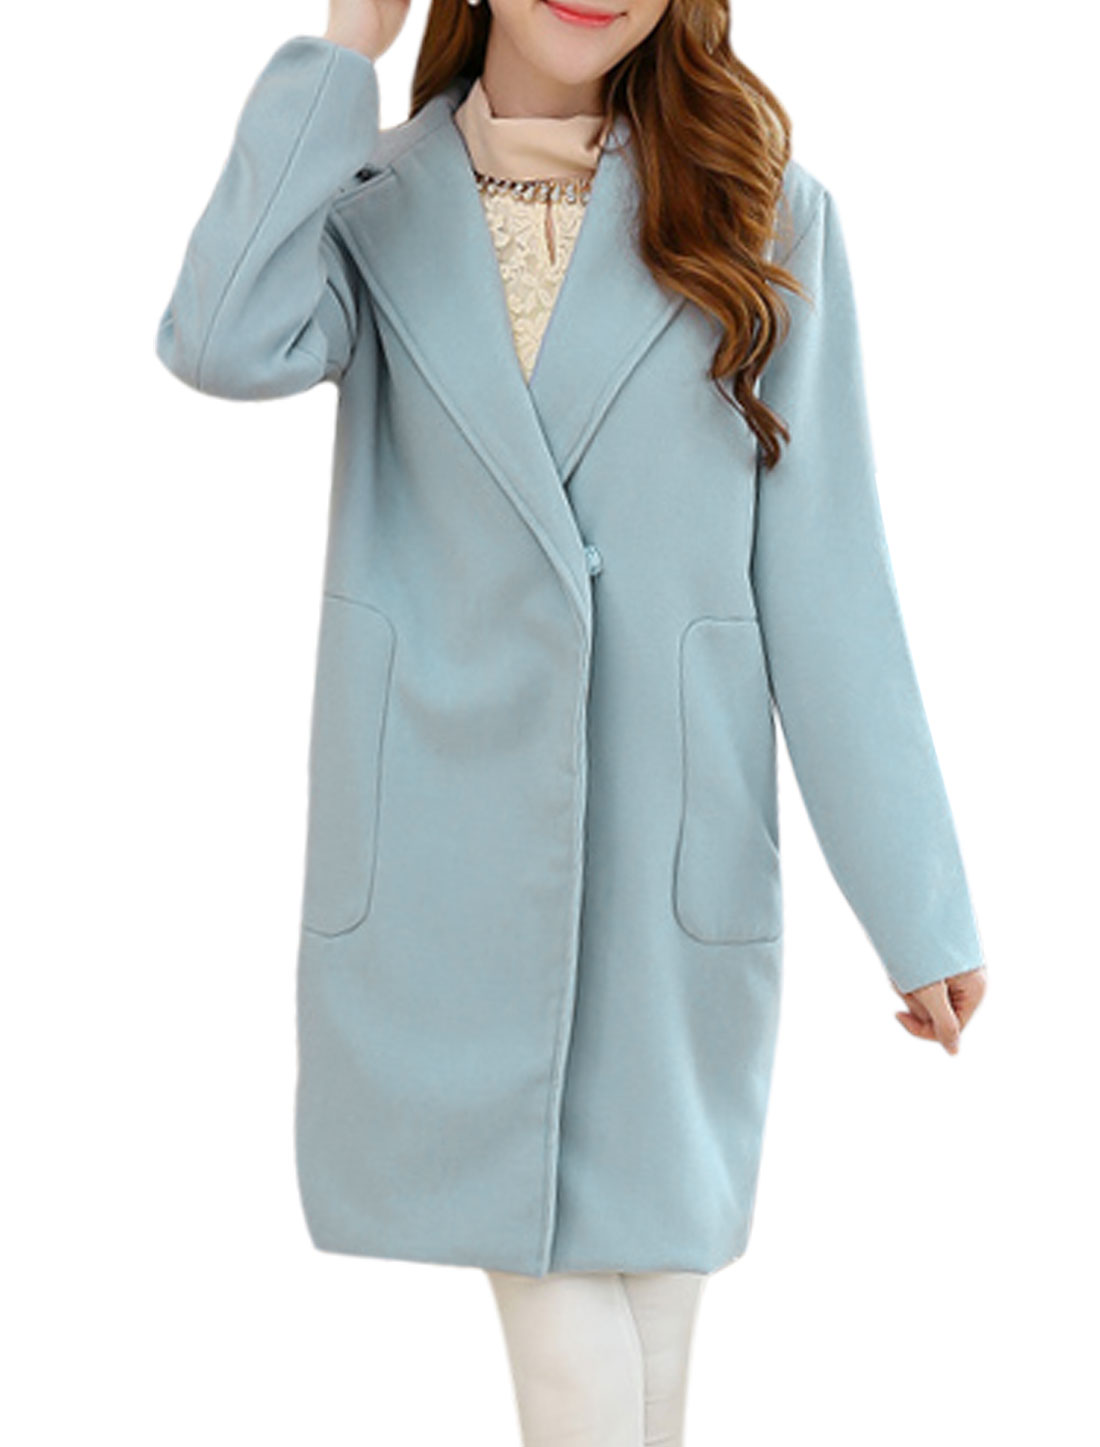 Lady Notched Lapel Patch Pockets One Snap Button Long Worsted Coat Light Blue M